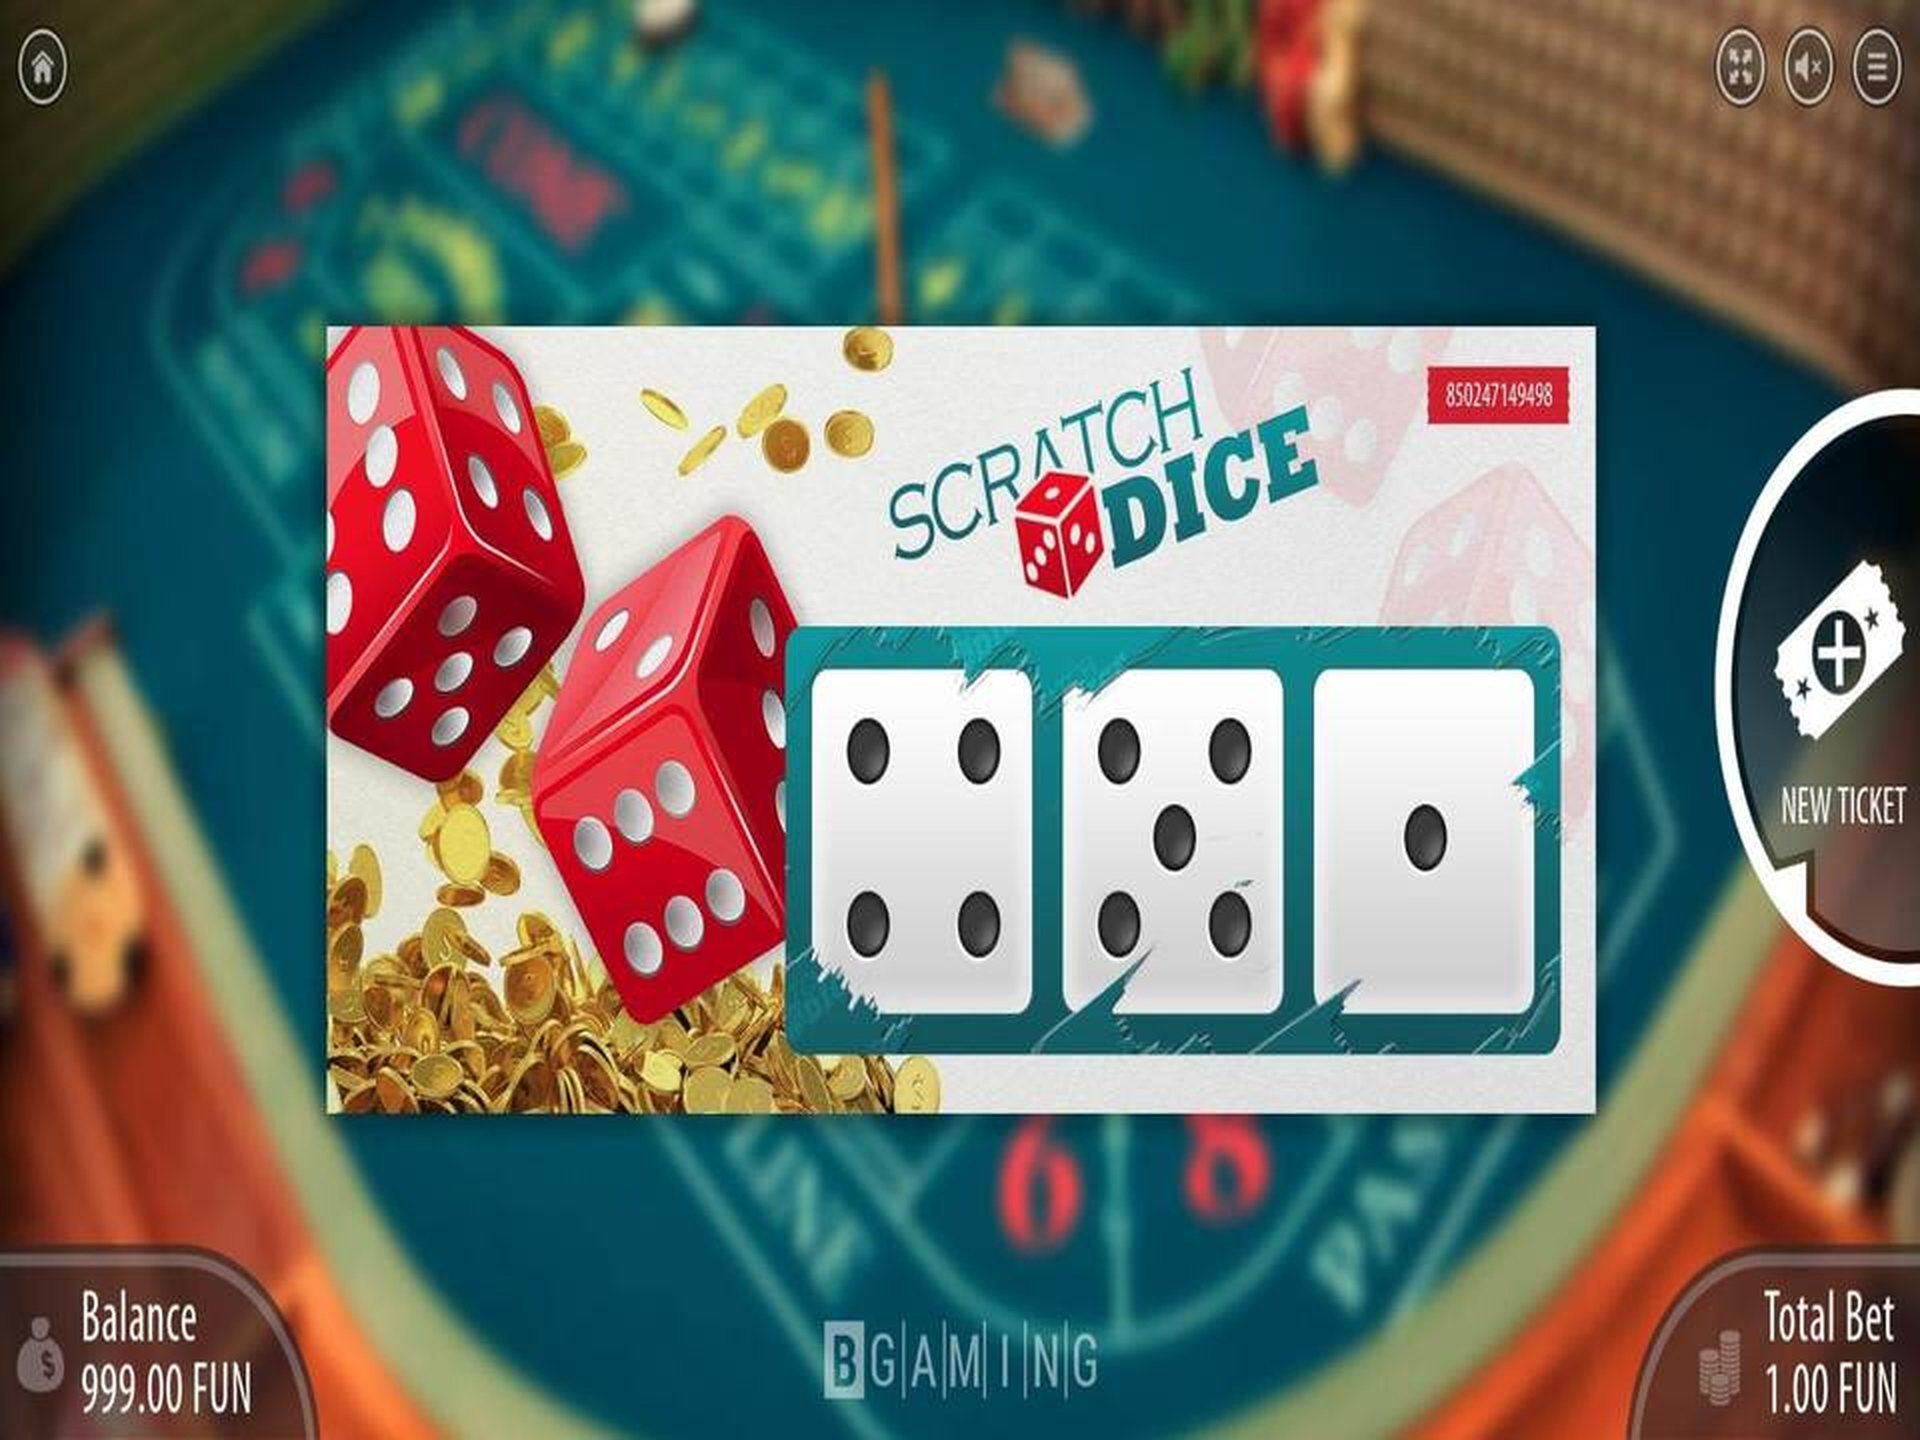 The Scratch Dice Online Slot Demo Game by BGAMING